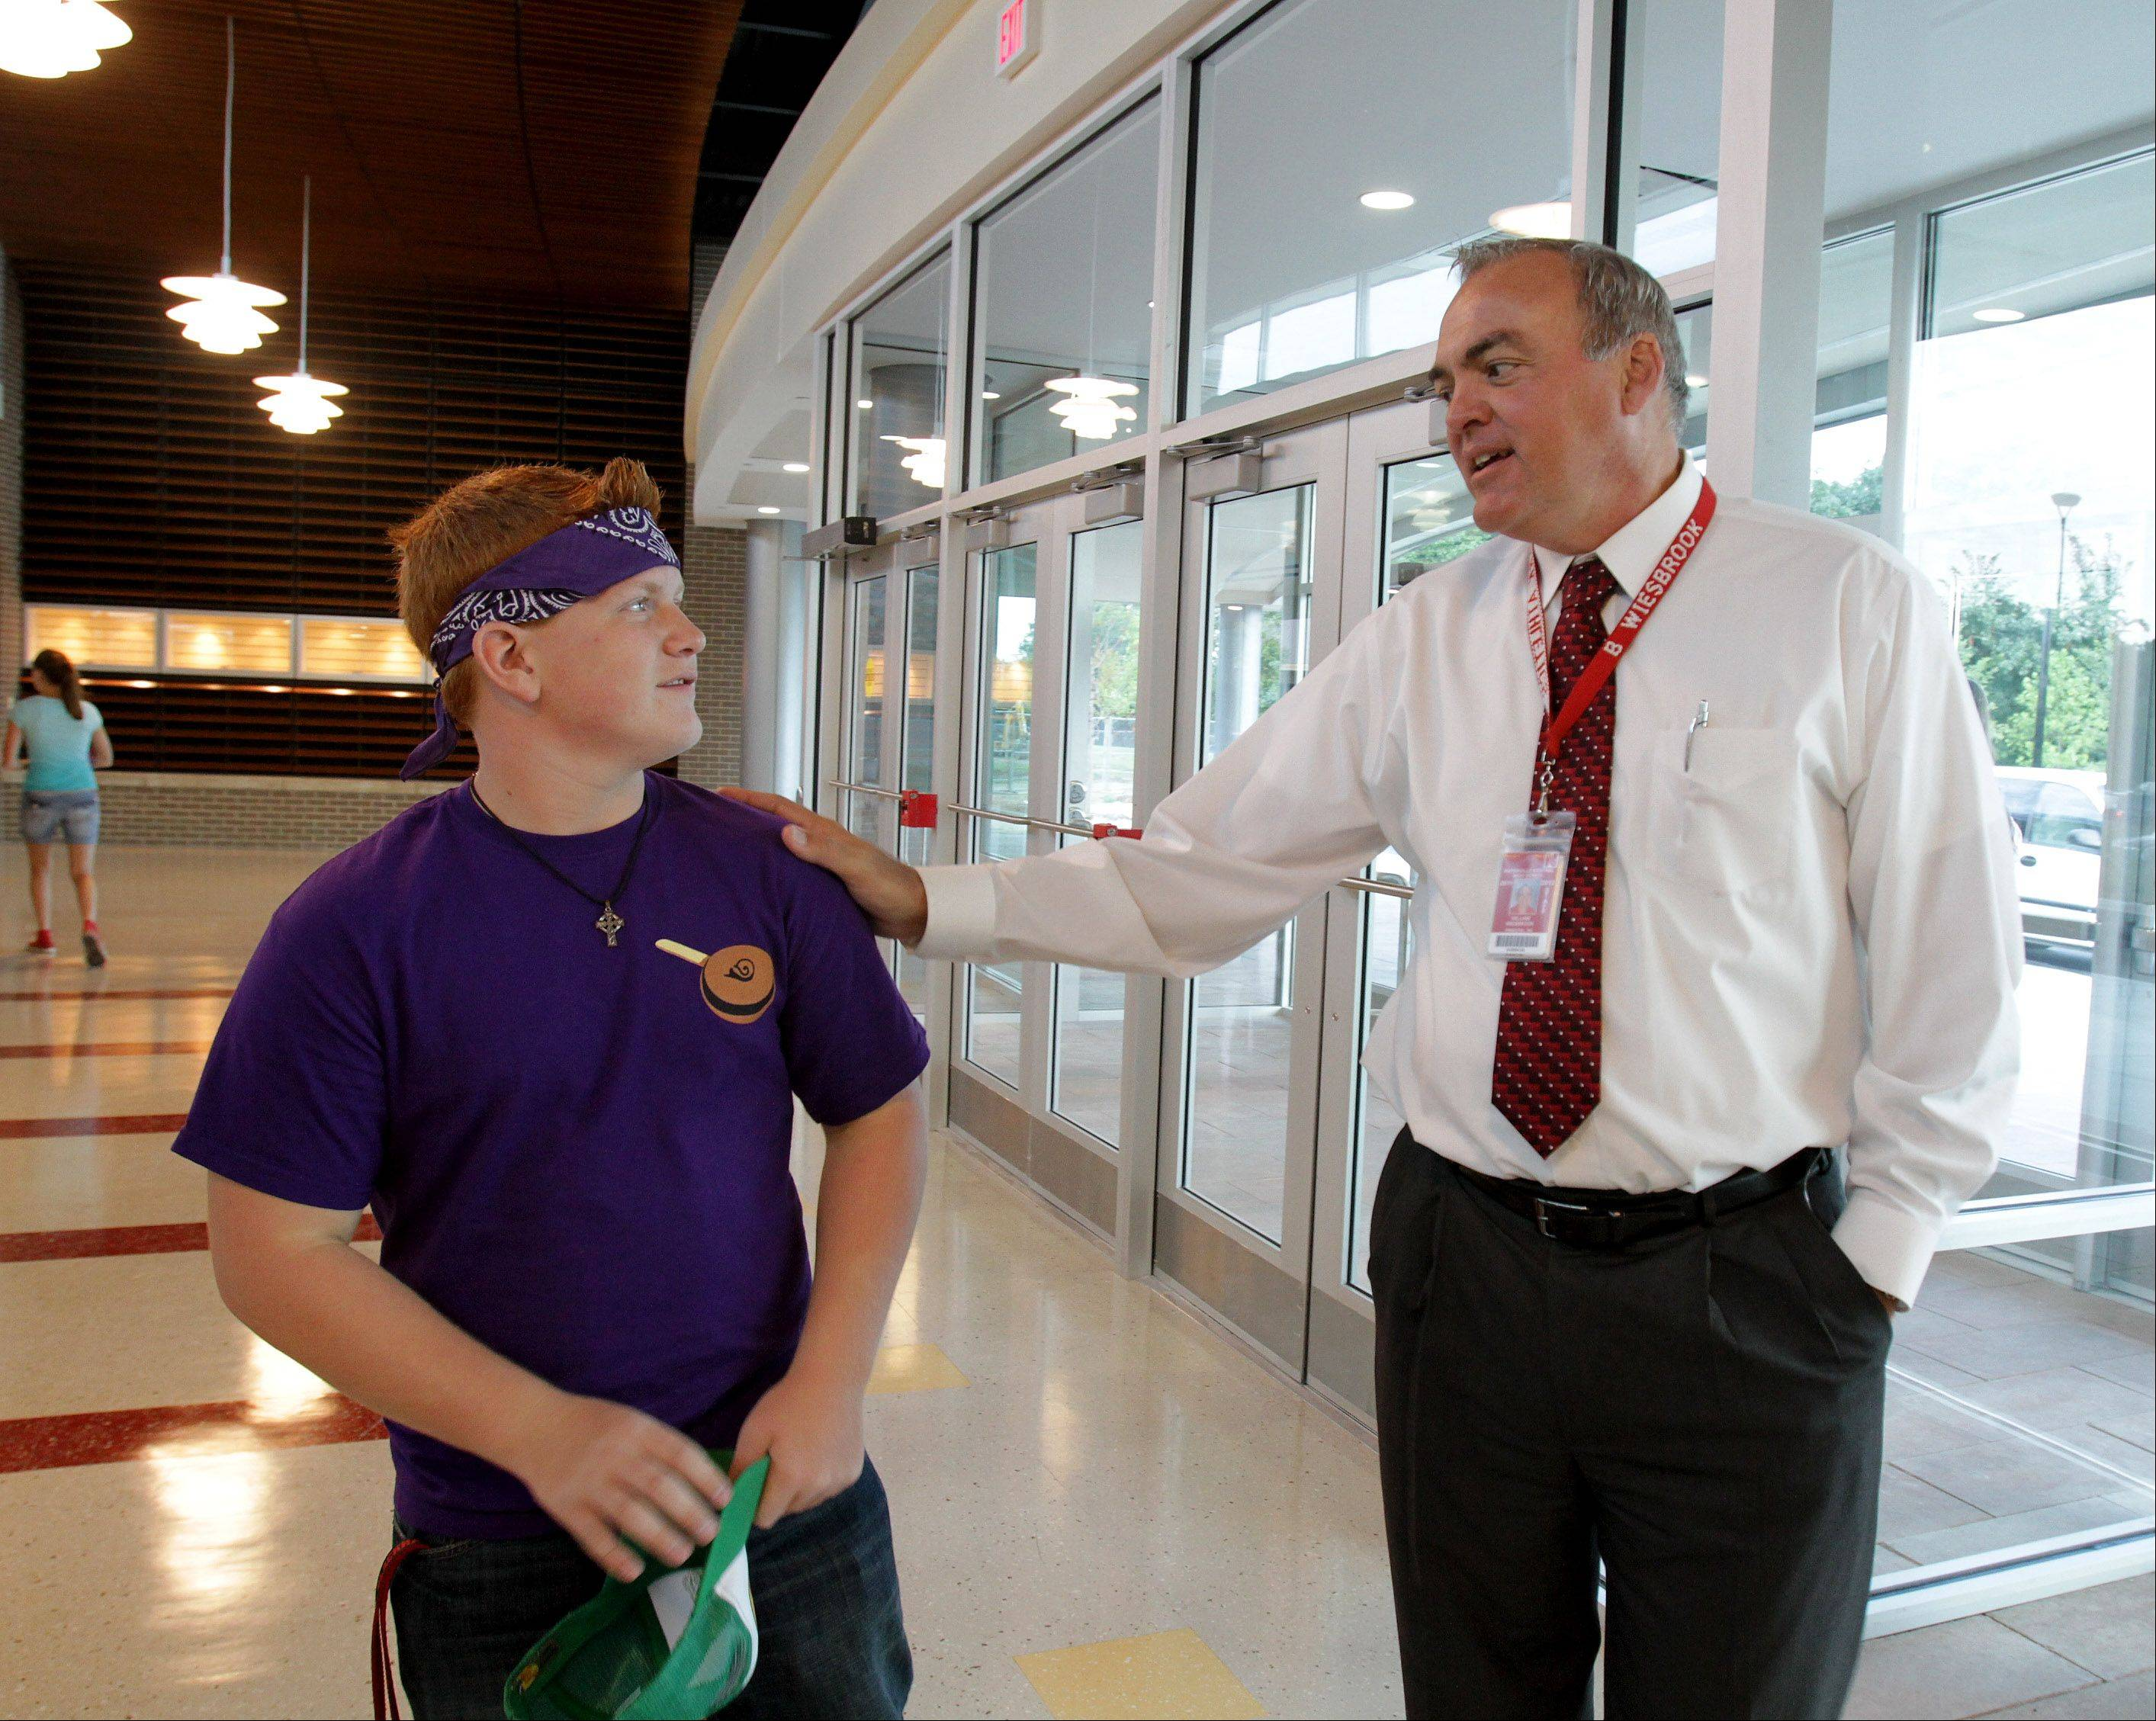 Principal Bill Wiesbrook greets junior Justin Tardy on the first day of school Wednesday in the fully renovated Naperville Central High School.